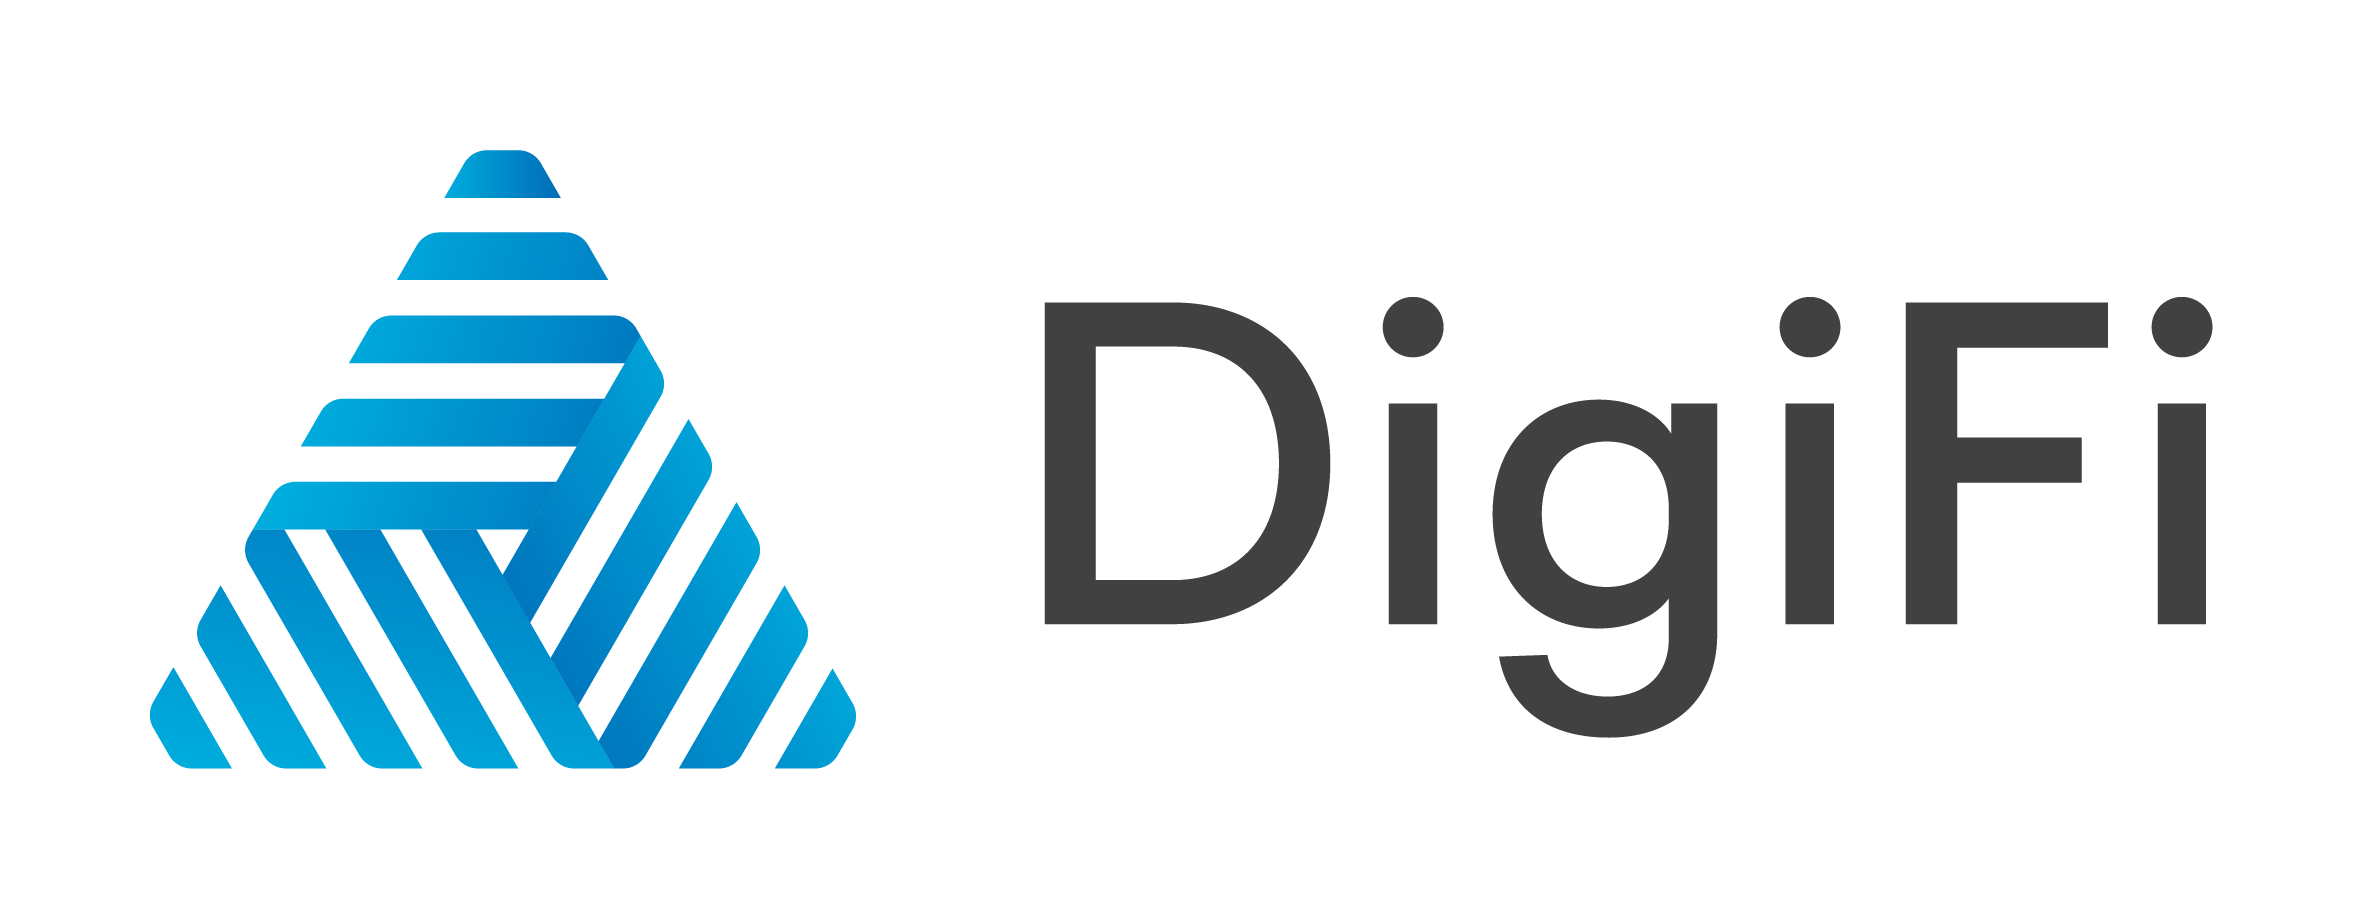 DigiFi Launches the World's First Open-Source Loan Origination System